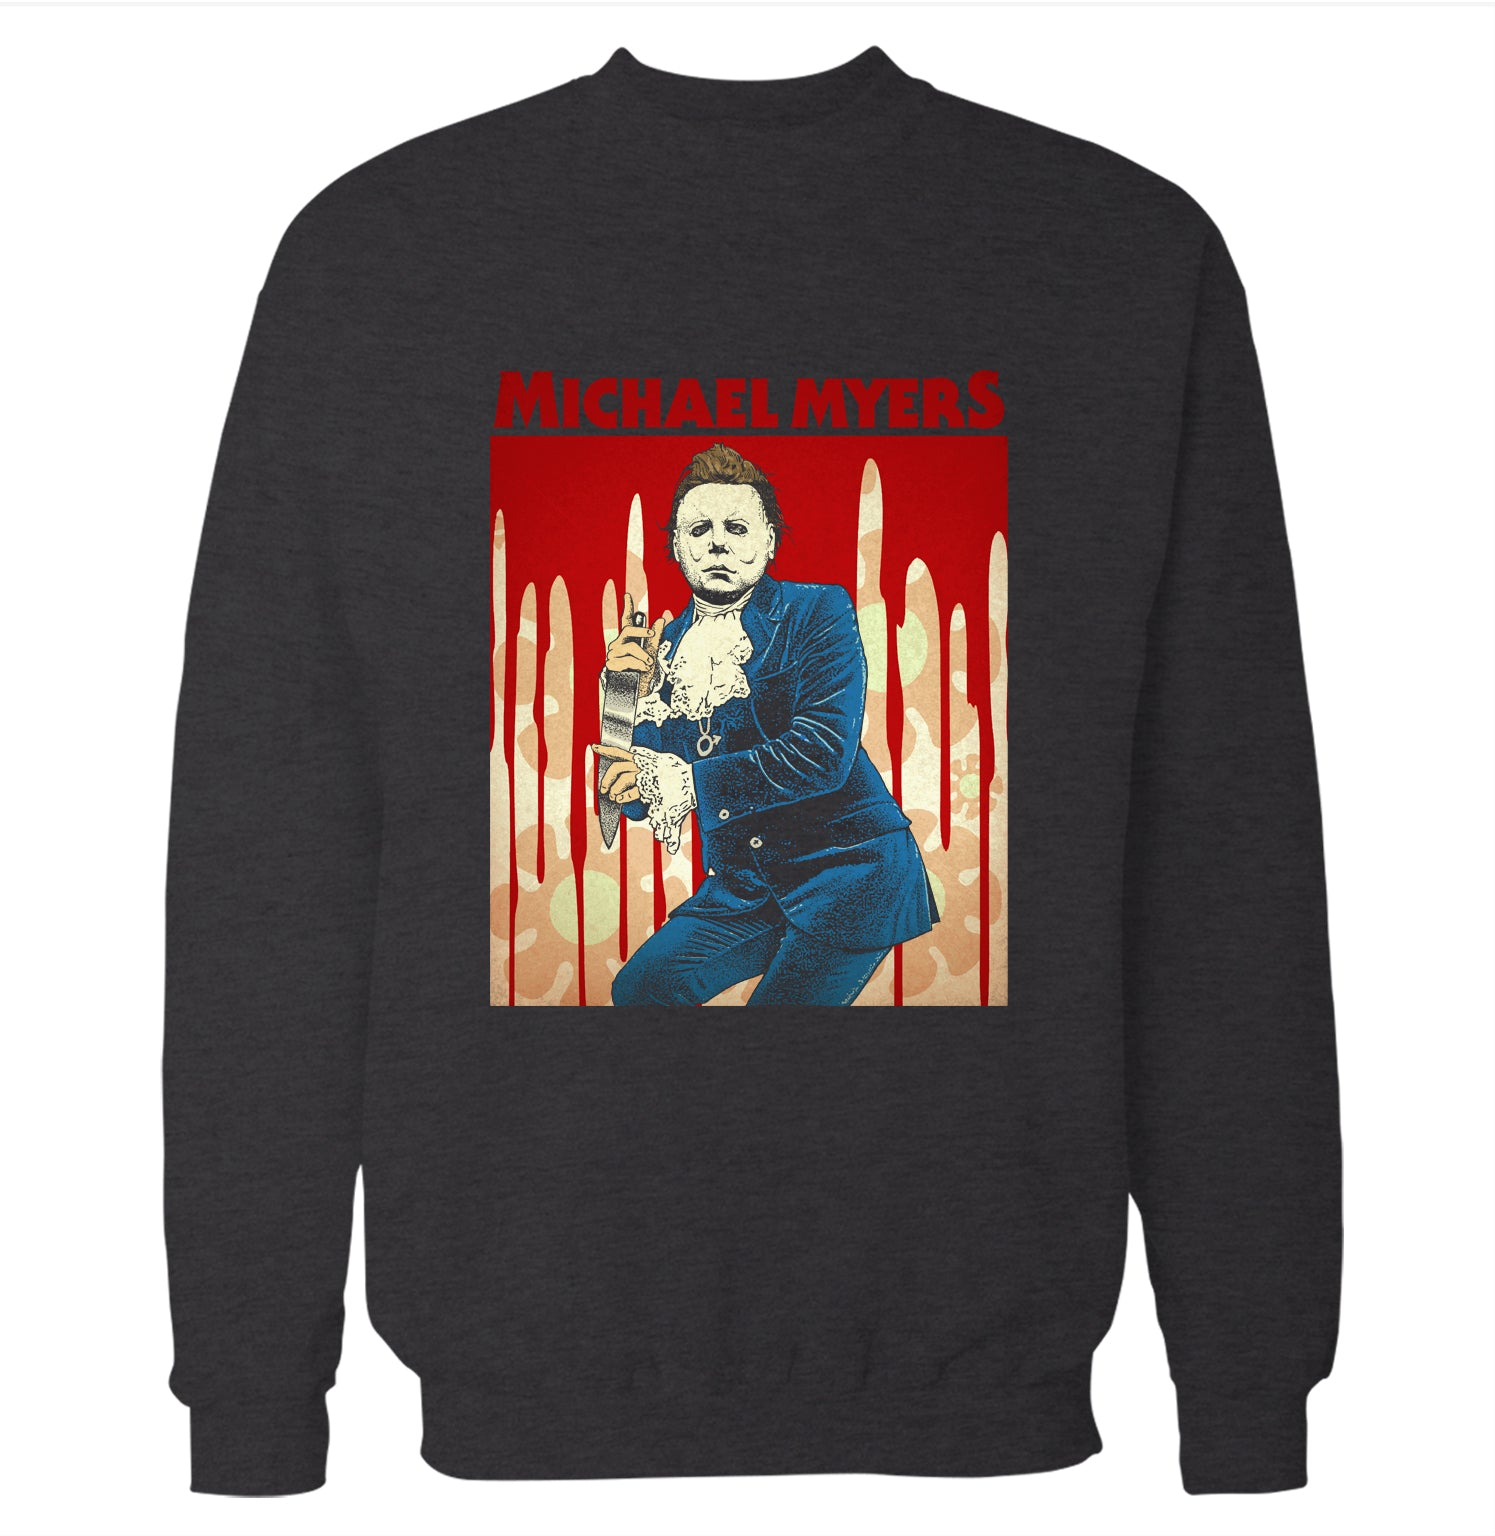 Michael Myers Halloween Sweatshirt Fun Times Tees